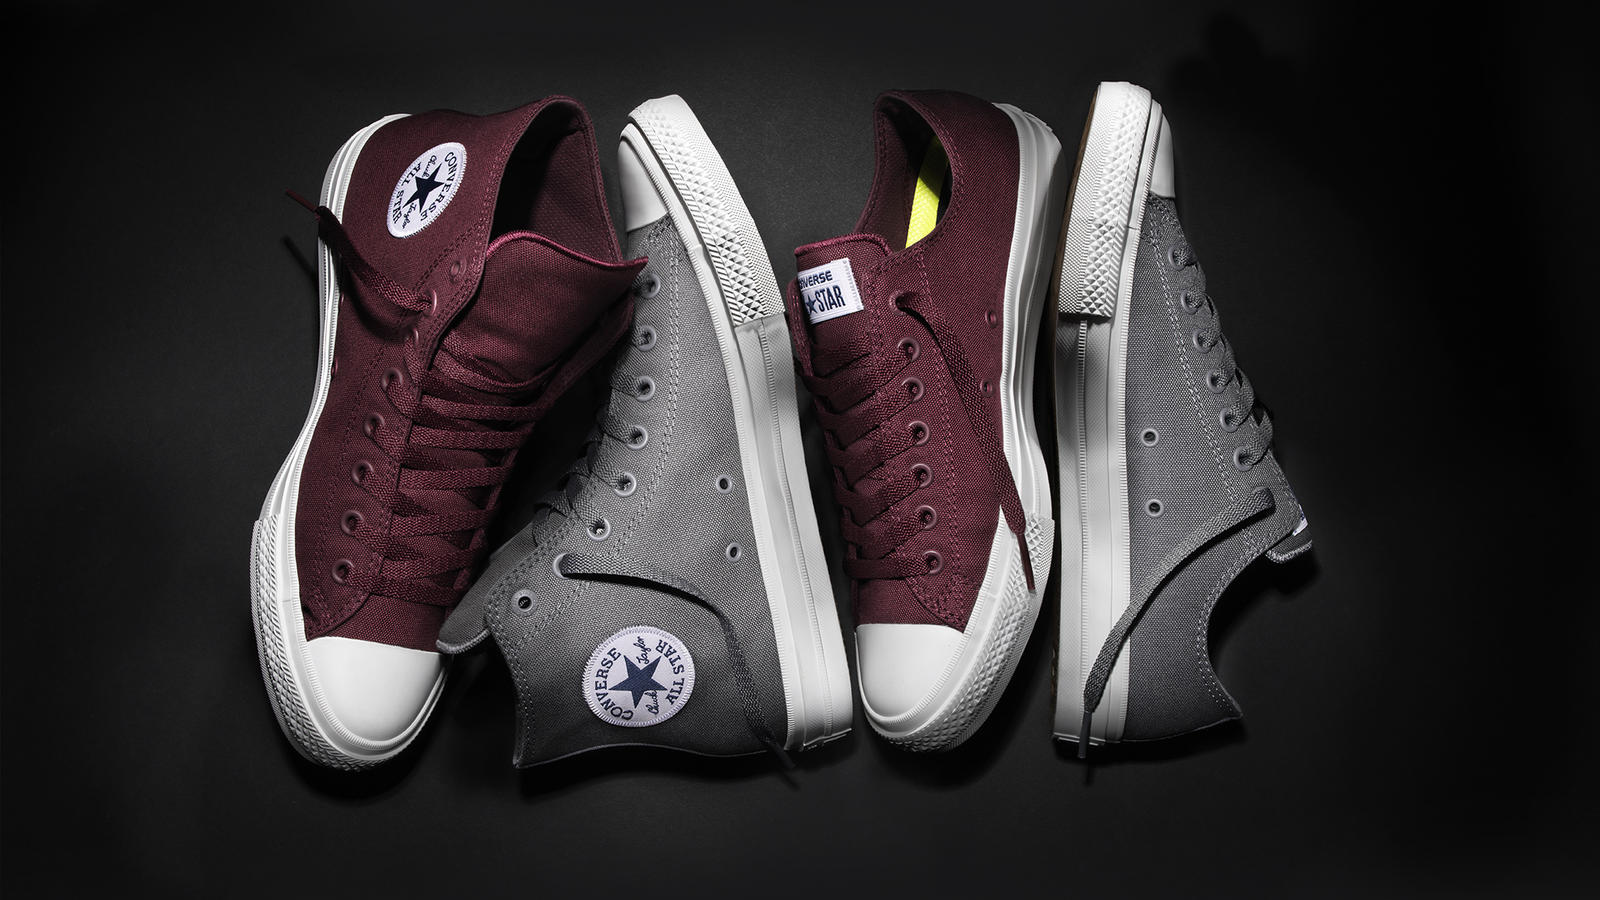 3f89677a2935 CONVERSE CHUCK TAYLOR ALL STAR II UNVEILS NEW SEASONAL COLORS - Nike ...